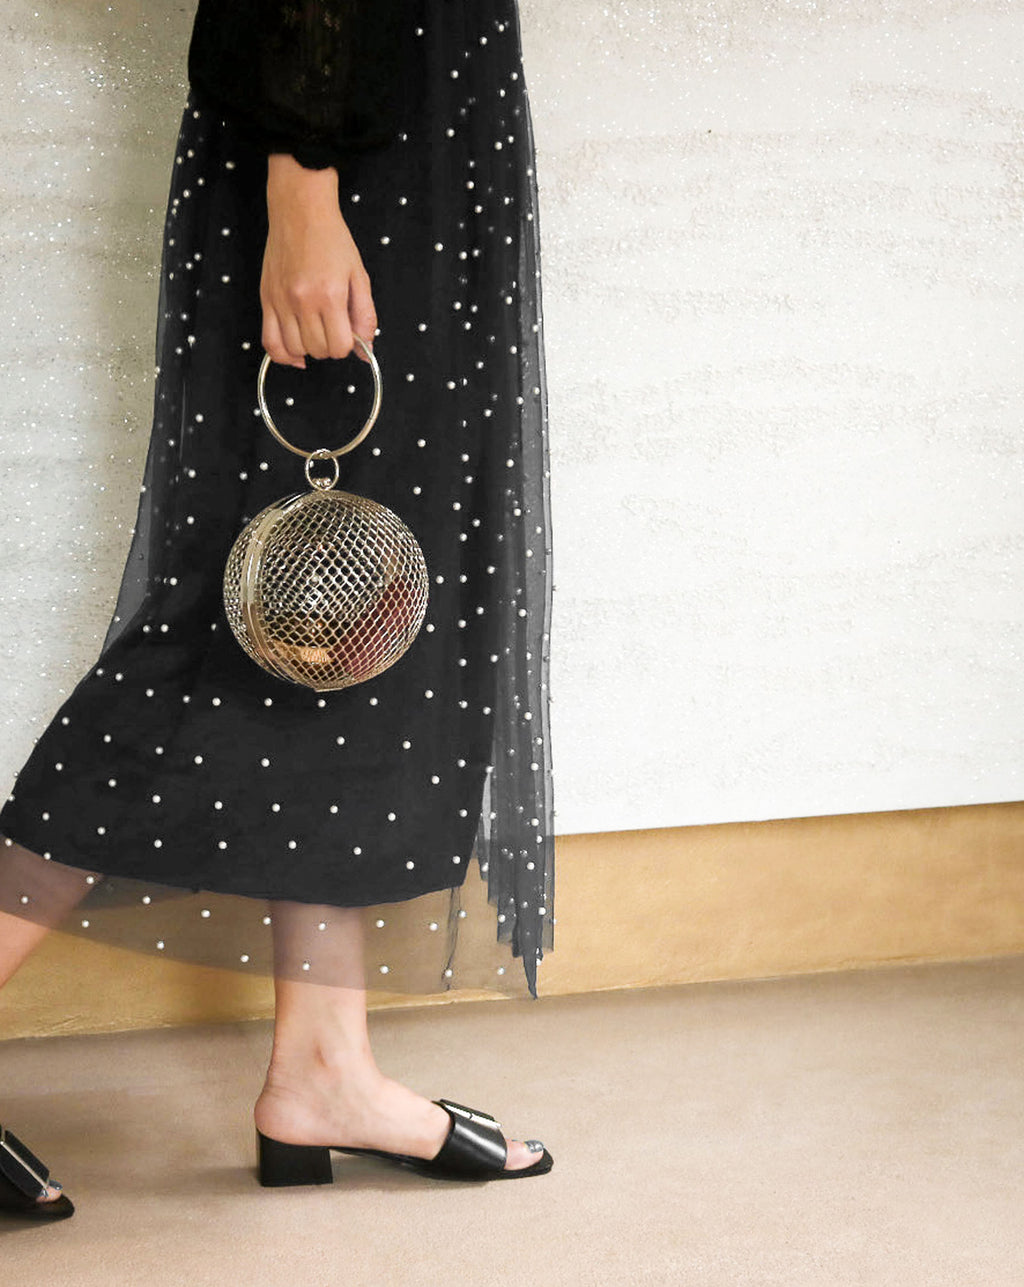 Stylish and unique cage ball clutch bag perfect for parties and events - The Hexad